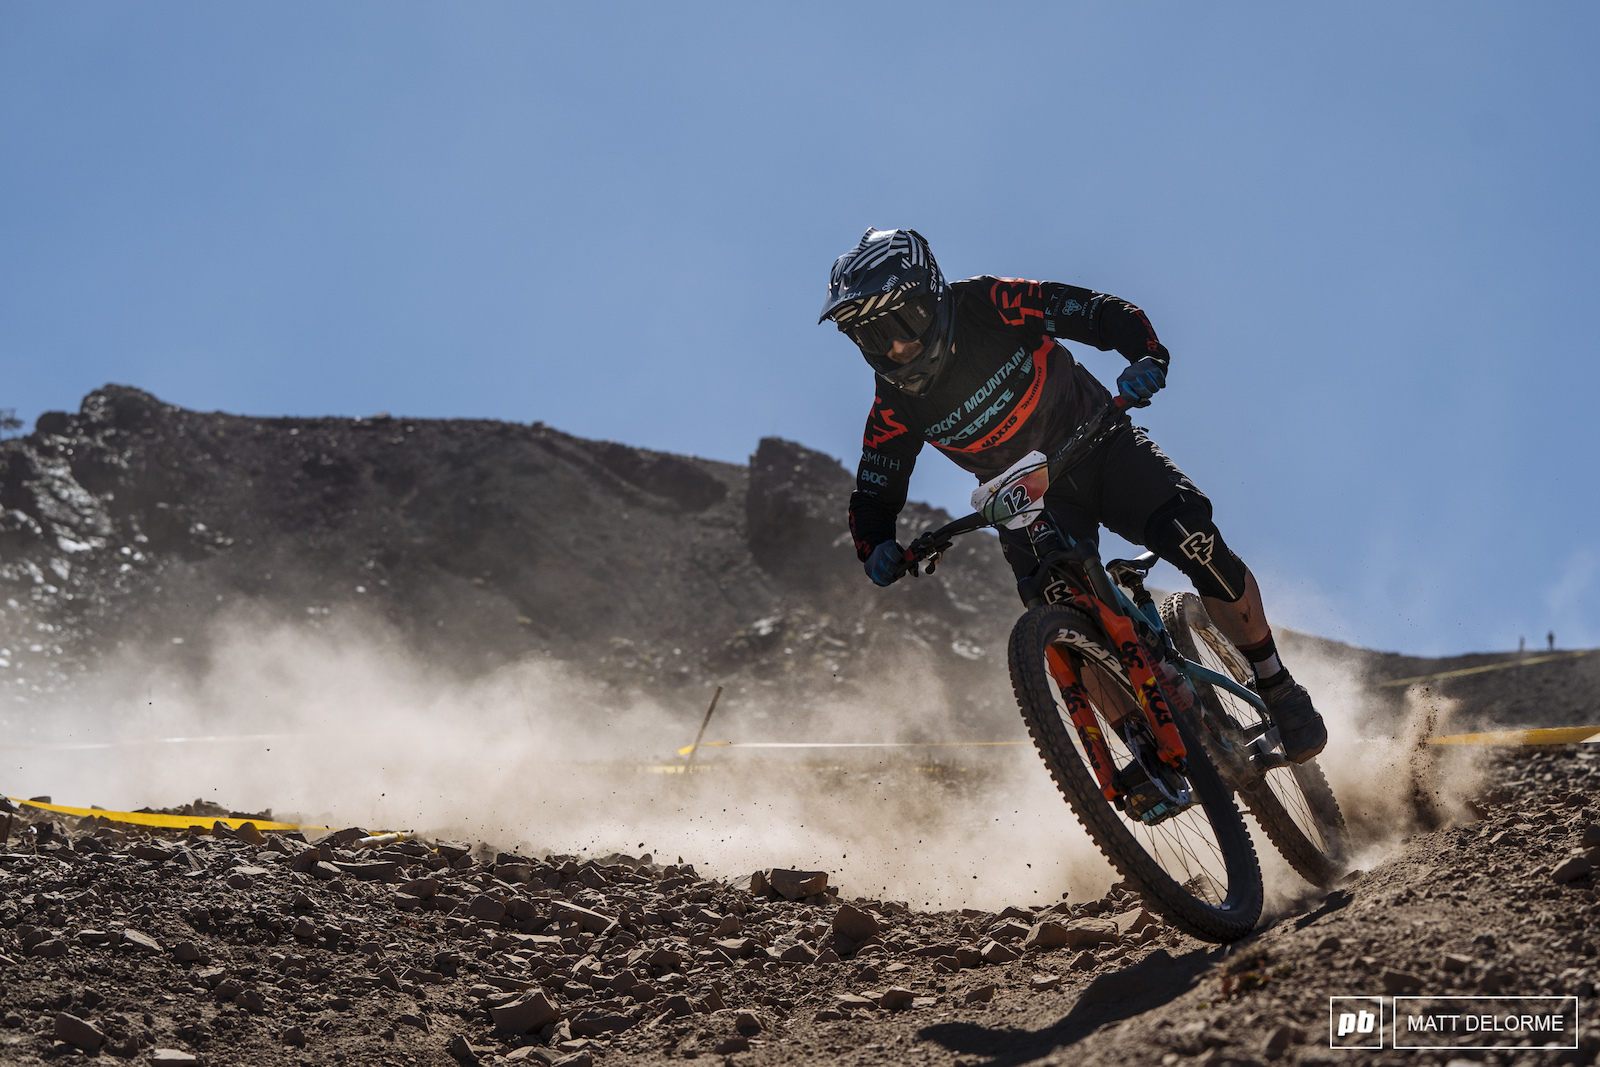 Jesse Melmed pushed through a rough four days with a pretty bad crash and still finished fifth.